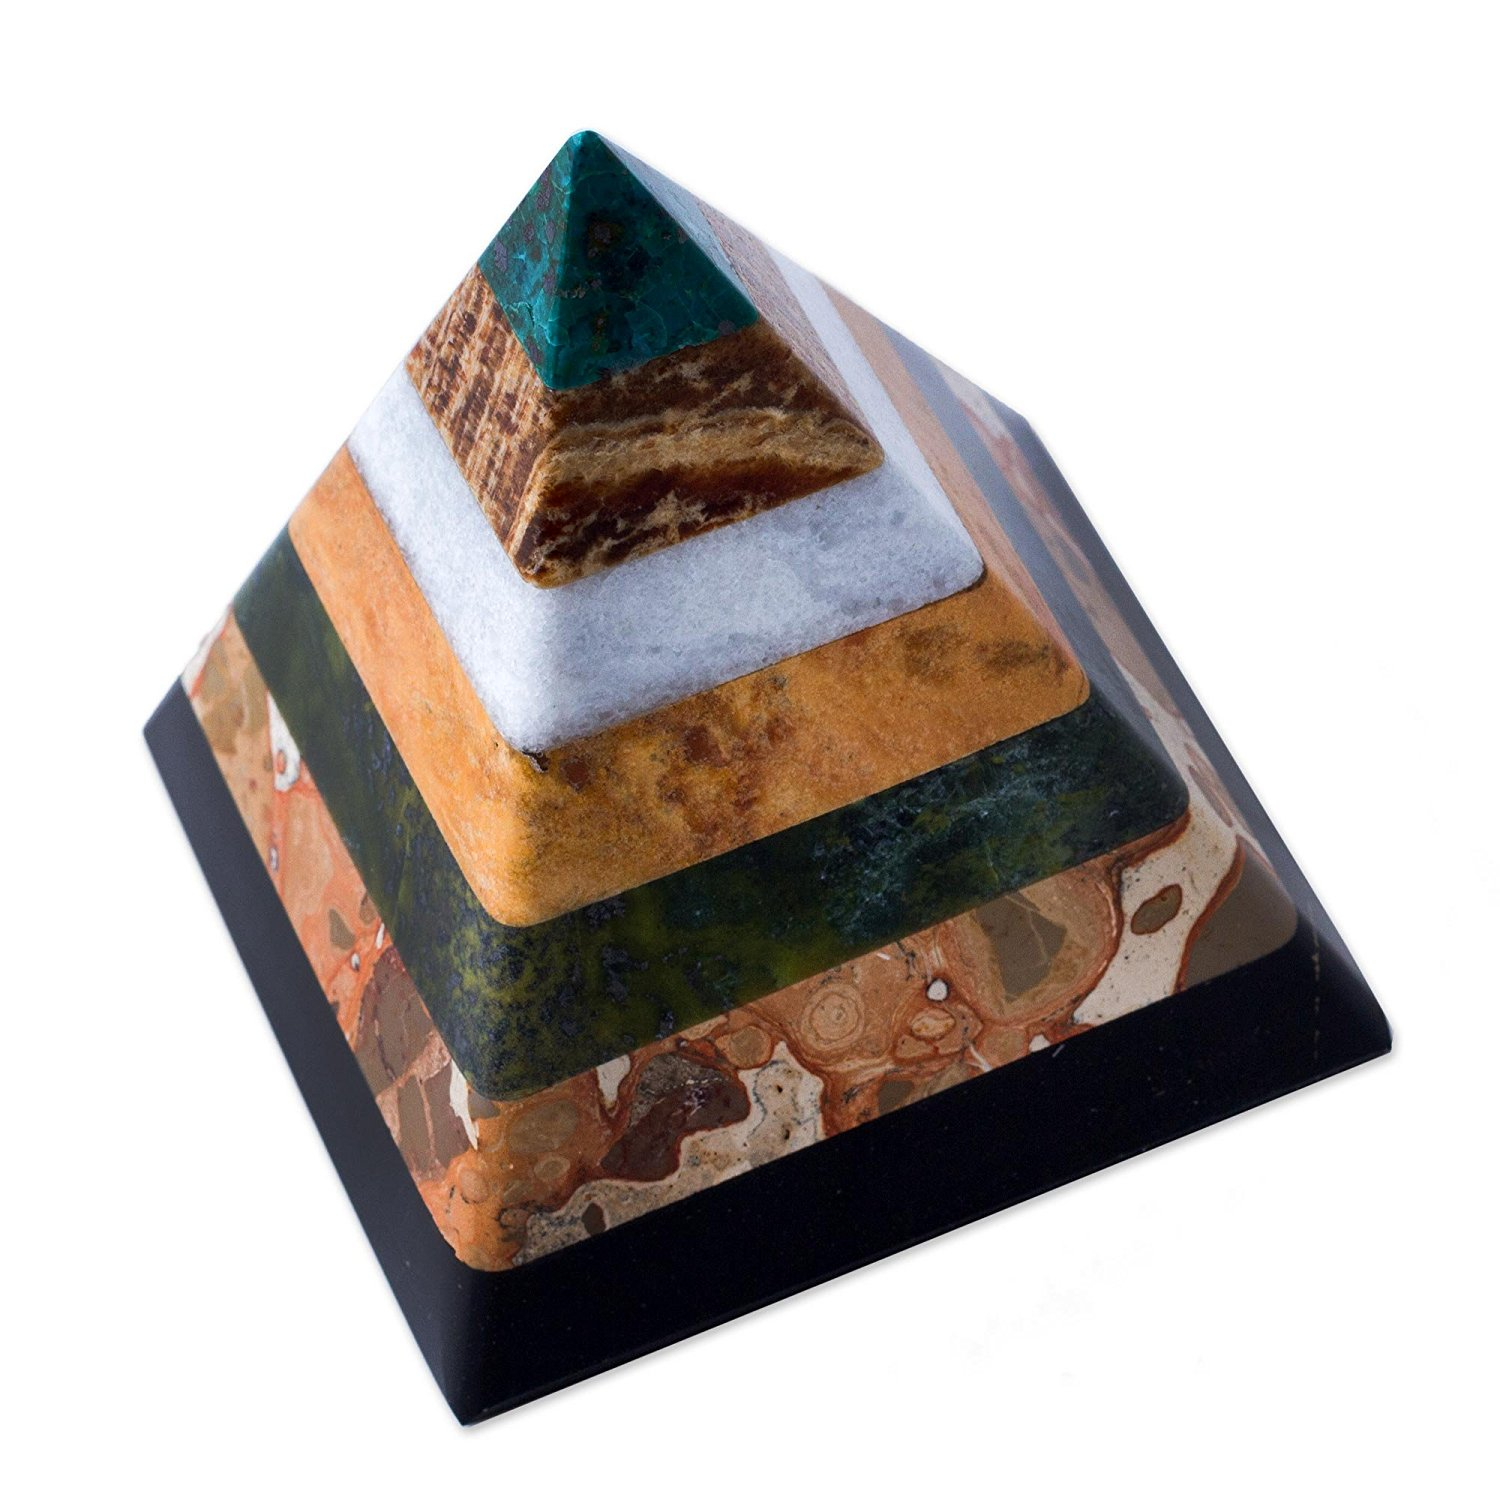 hand crafted multicolor natural gemstone geometric positive energy spiritual healing pyramid sculpture 3 be positive apply feng shui